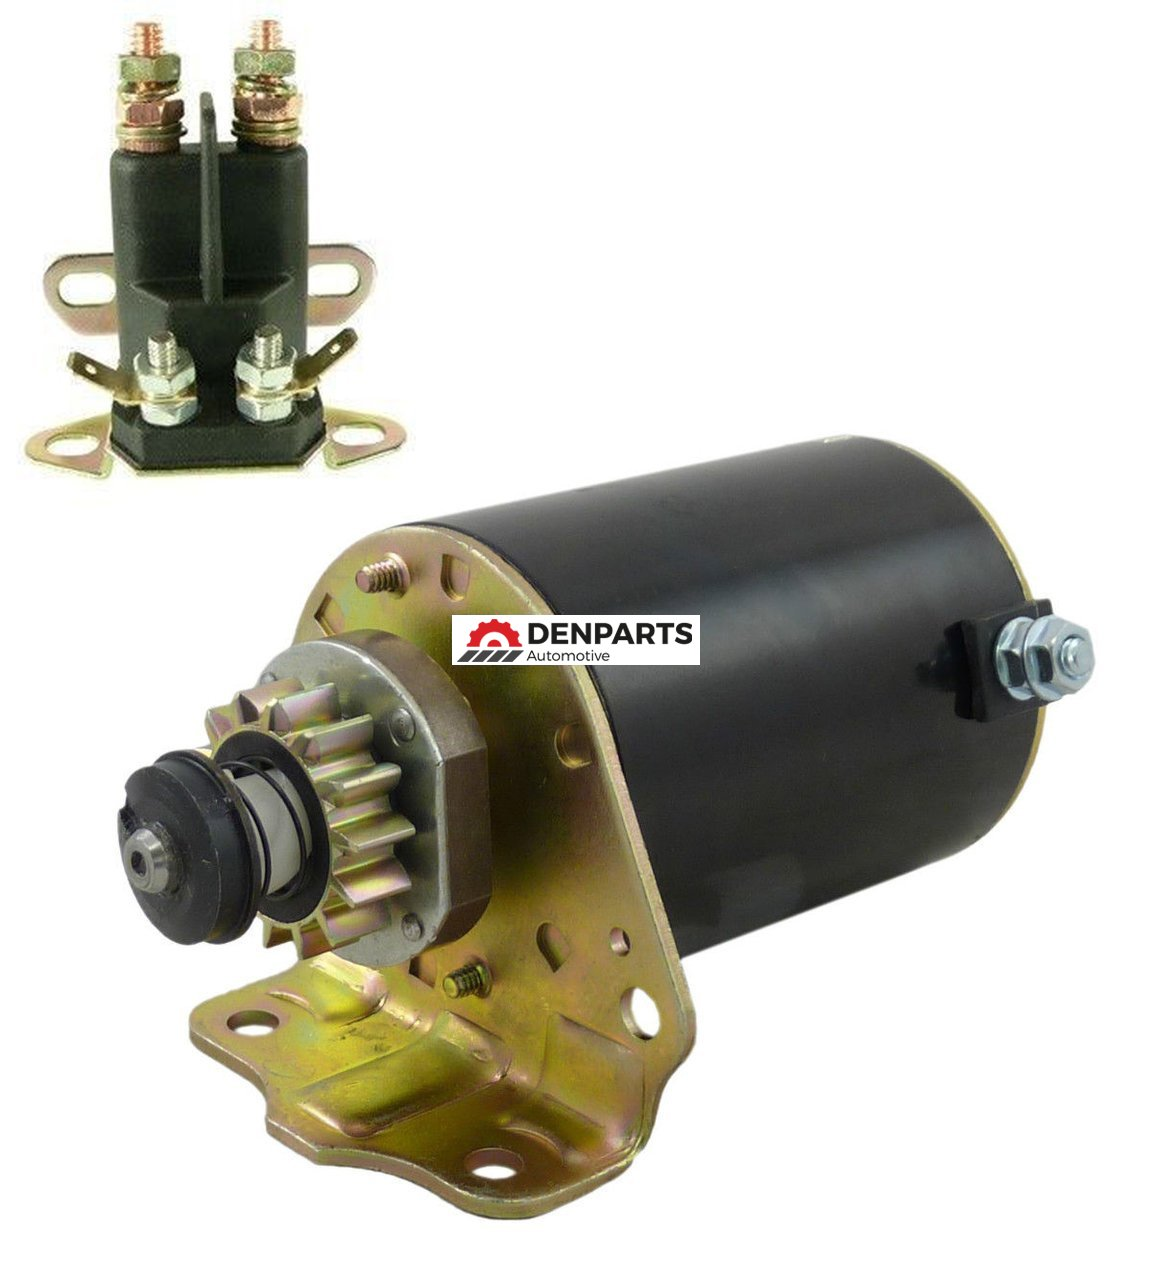 Starter Solenoid Kit For Cub Cadet 1170 Single 17hp Twin 2000 2001 LG693551